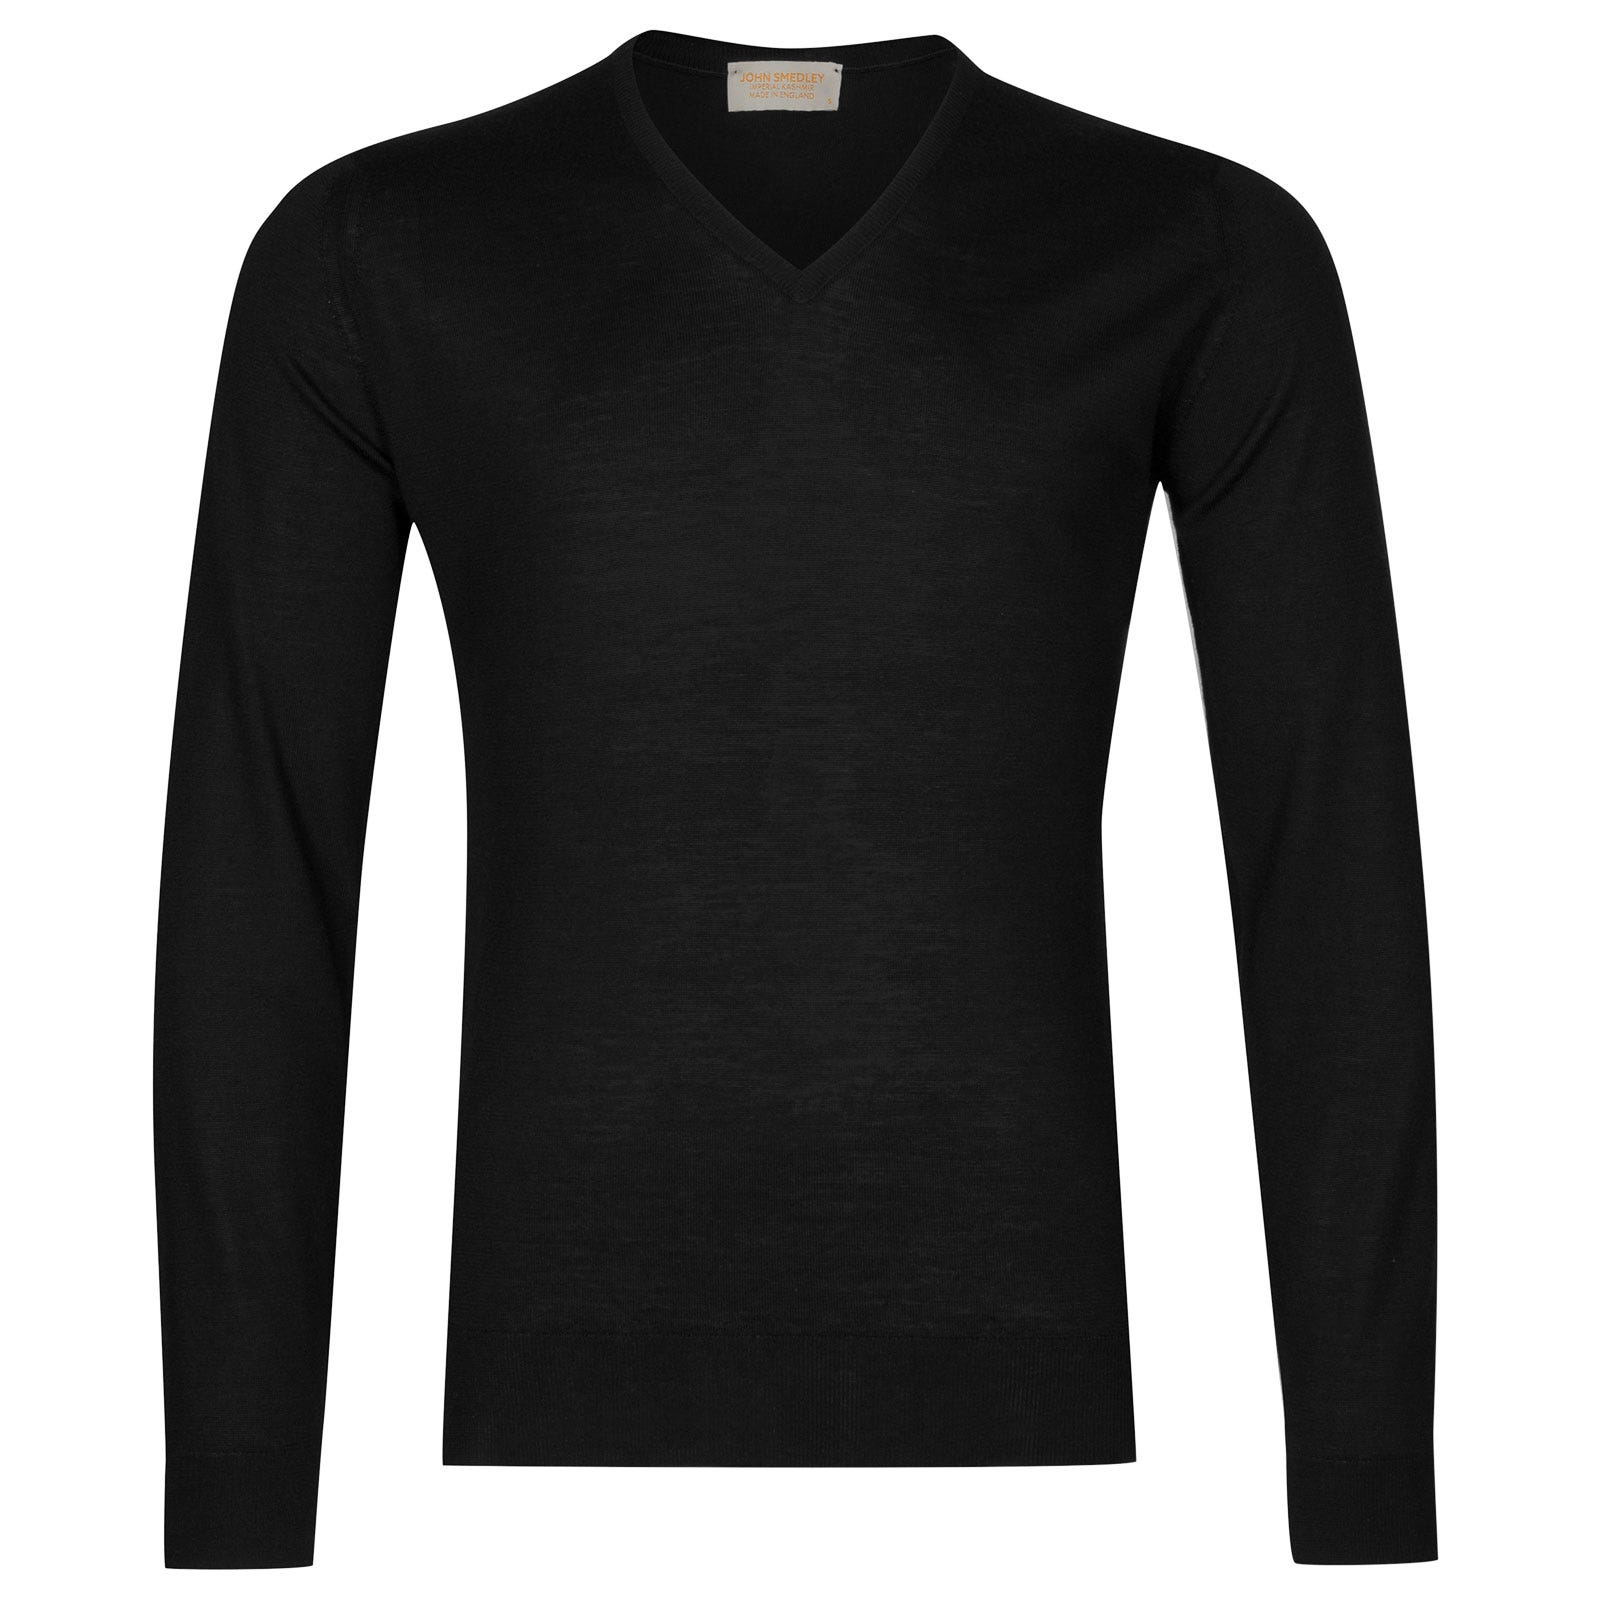 John Smedley newark Merino Wool and Cashmere Pullover in Black-L